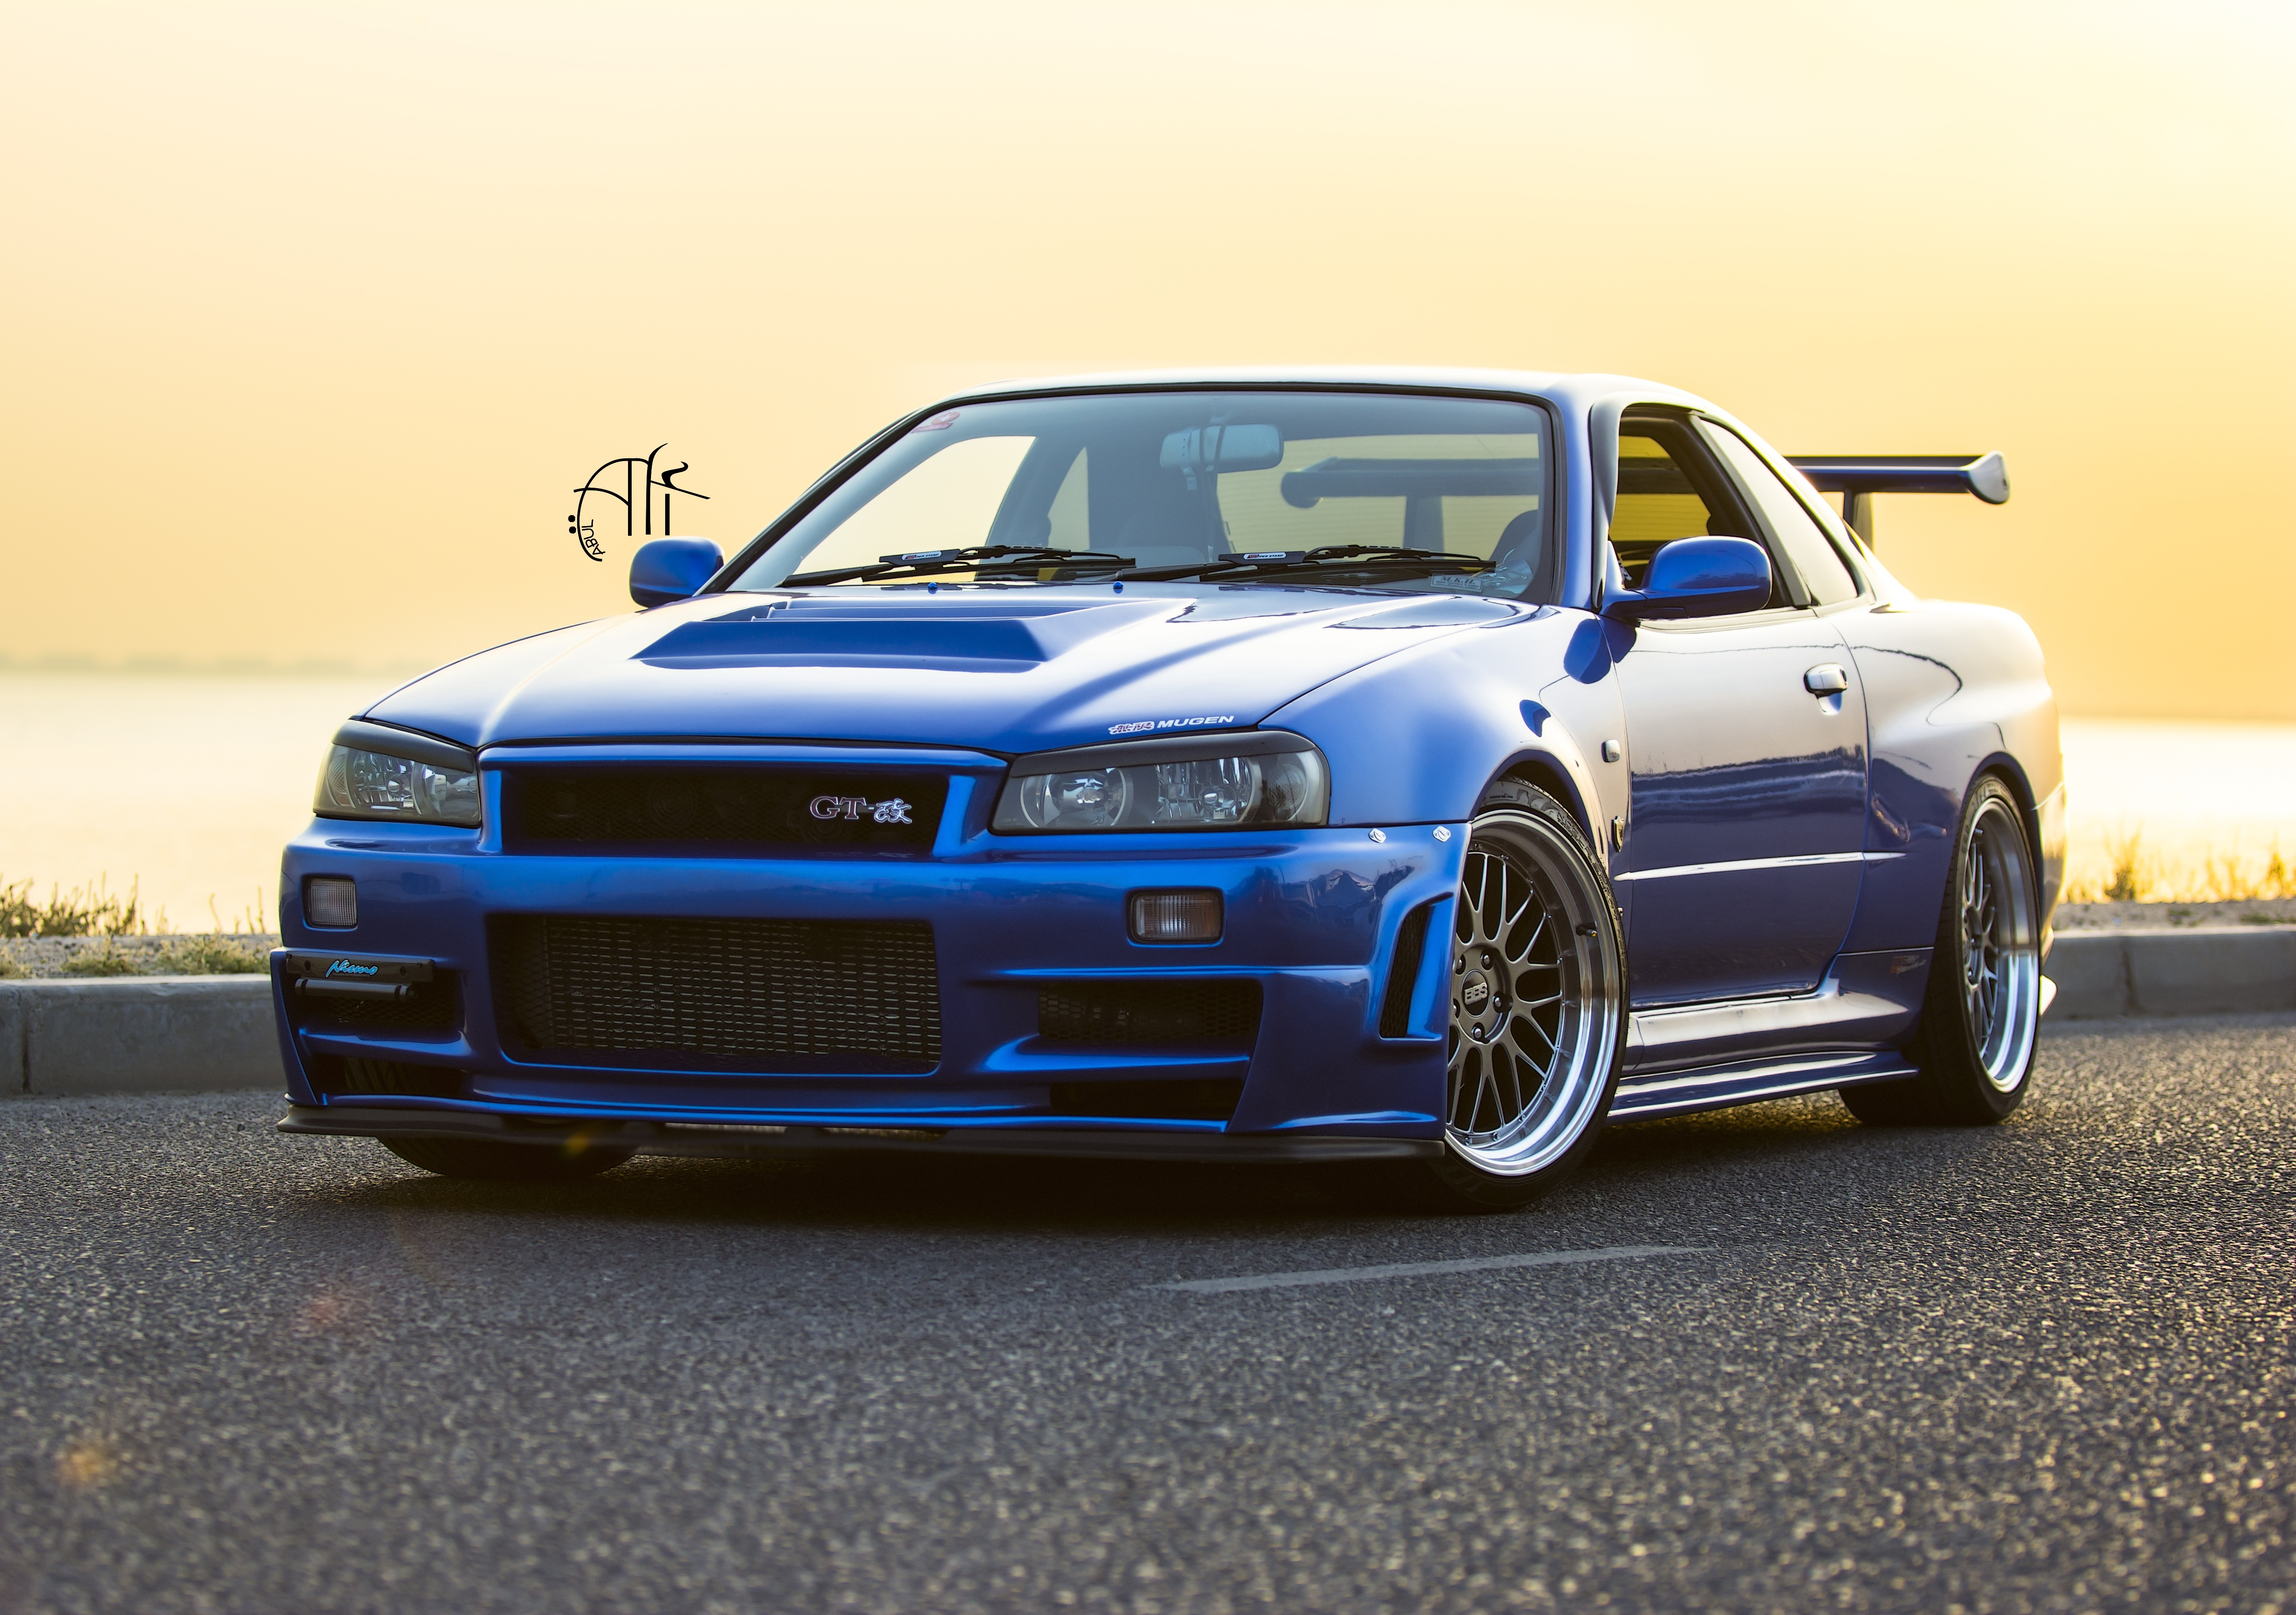 Home Cars HD Wallpapers Car Nissan Nissan Skyline GT R Tuning 5685x4000